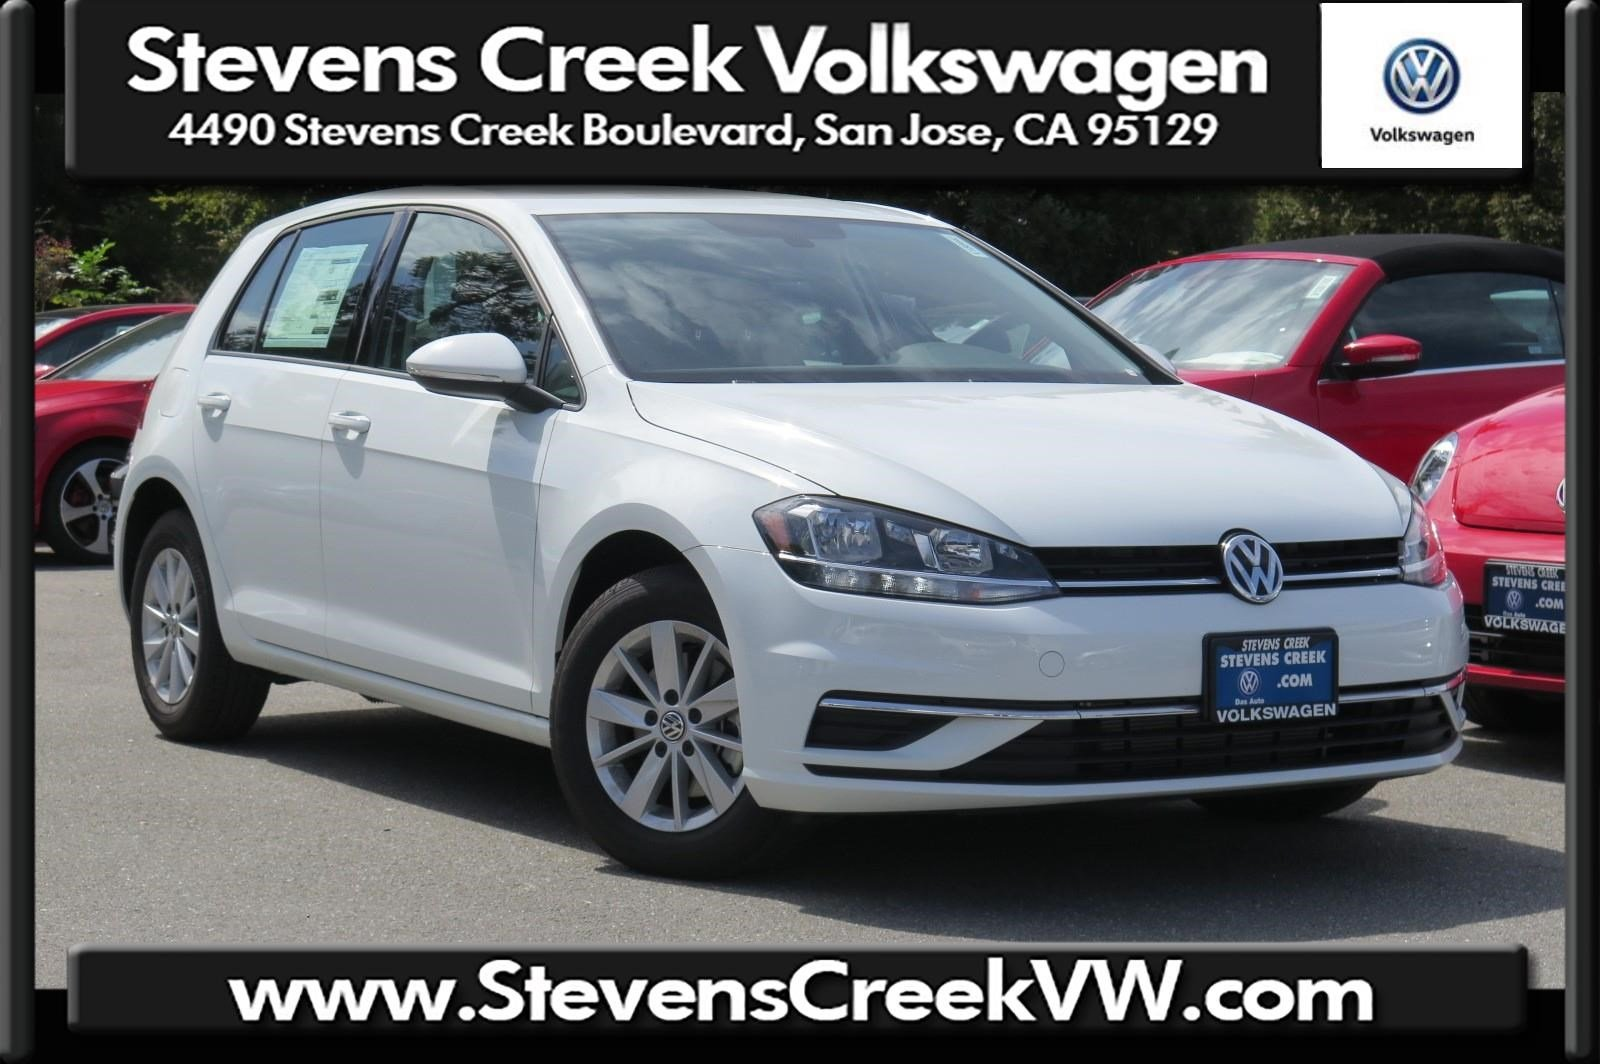 New 2018 Volkswagen Golf S FWD Hatchback VIN JM265358 MSRP $22,080